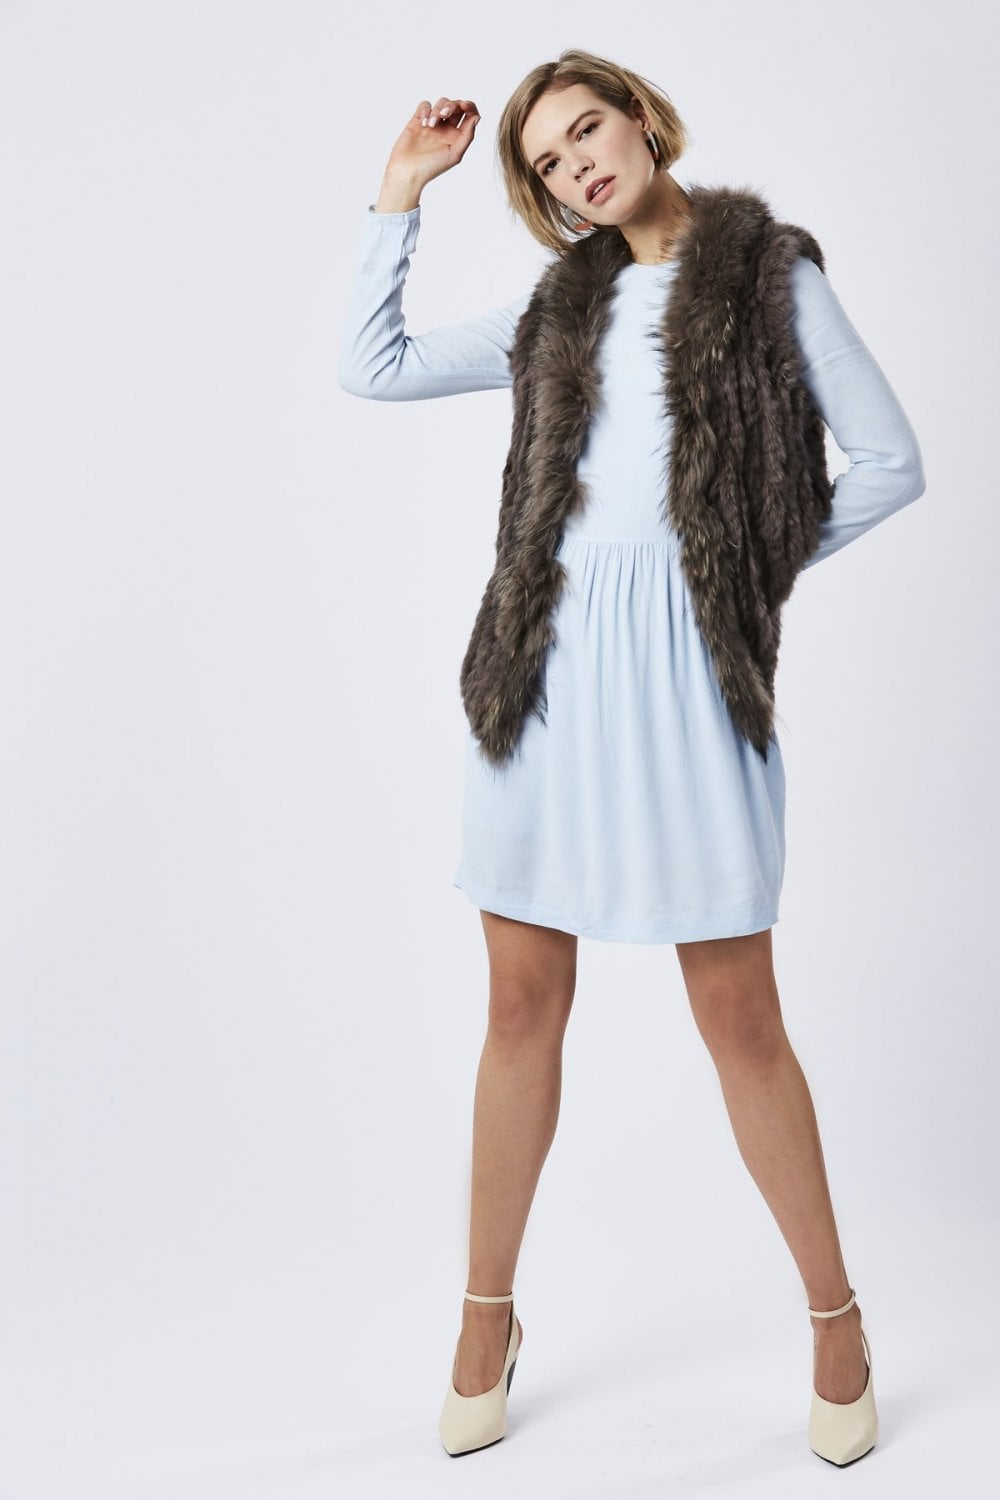 fox-and-coney-fur-gilet-with-collar-feature-p26-21121_image